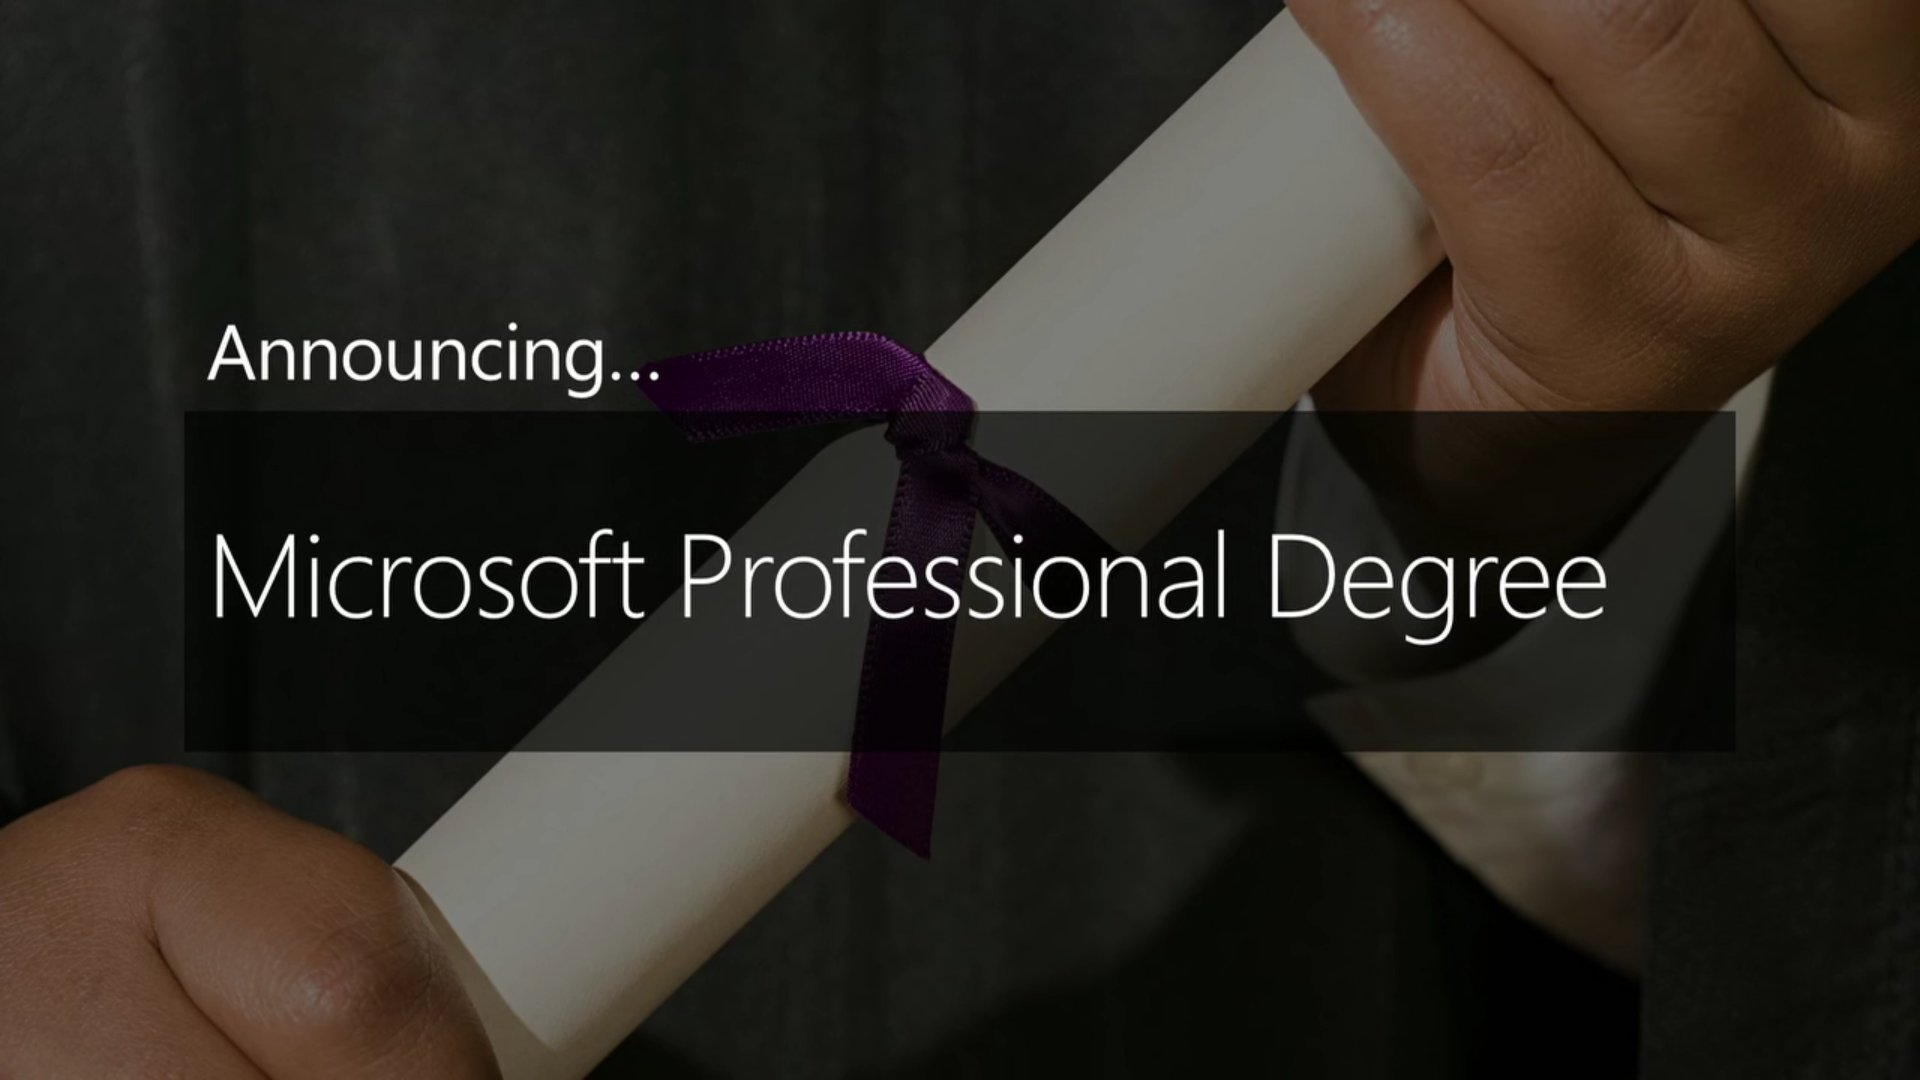 Microsoft Professional Degree